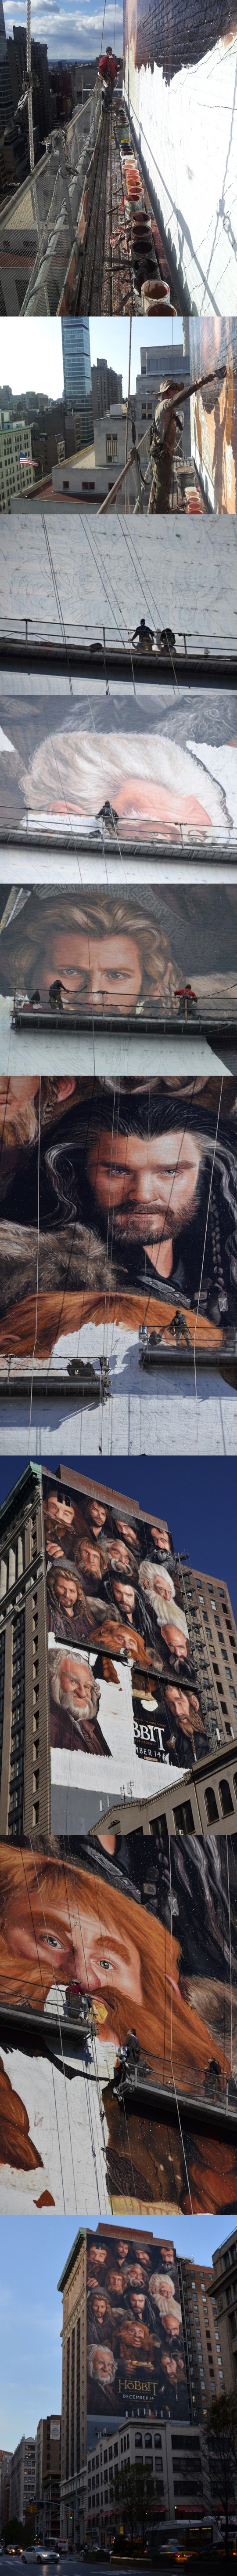 This is how you paint 150 foot tall HOBBIT dwarves by Irene Gallo.   WOW